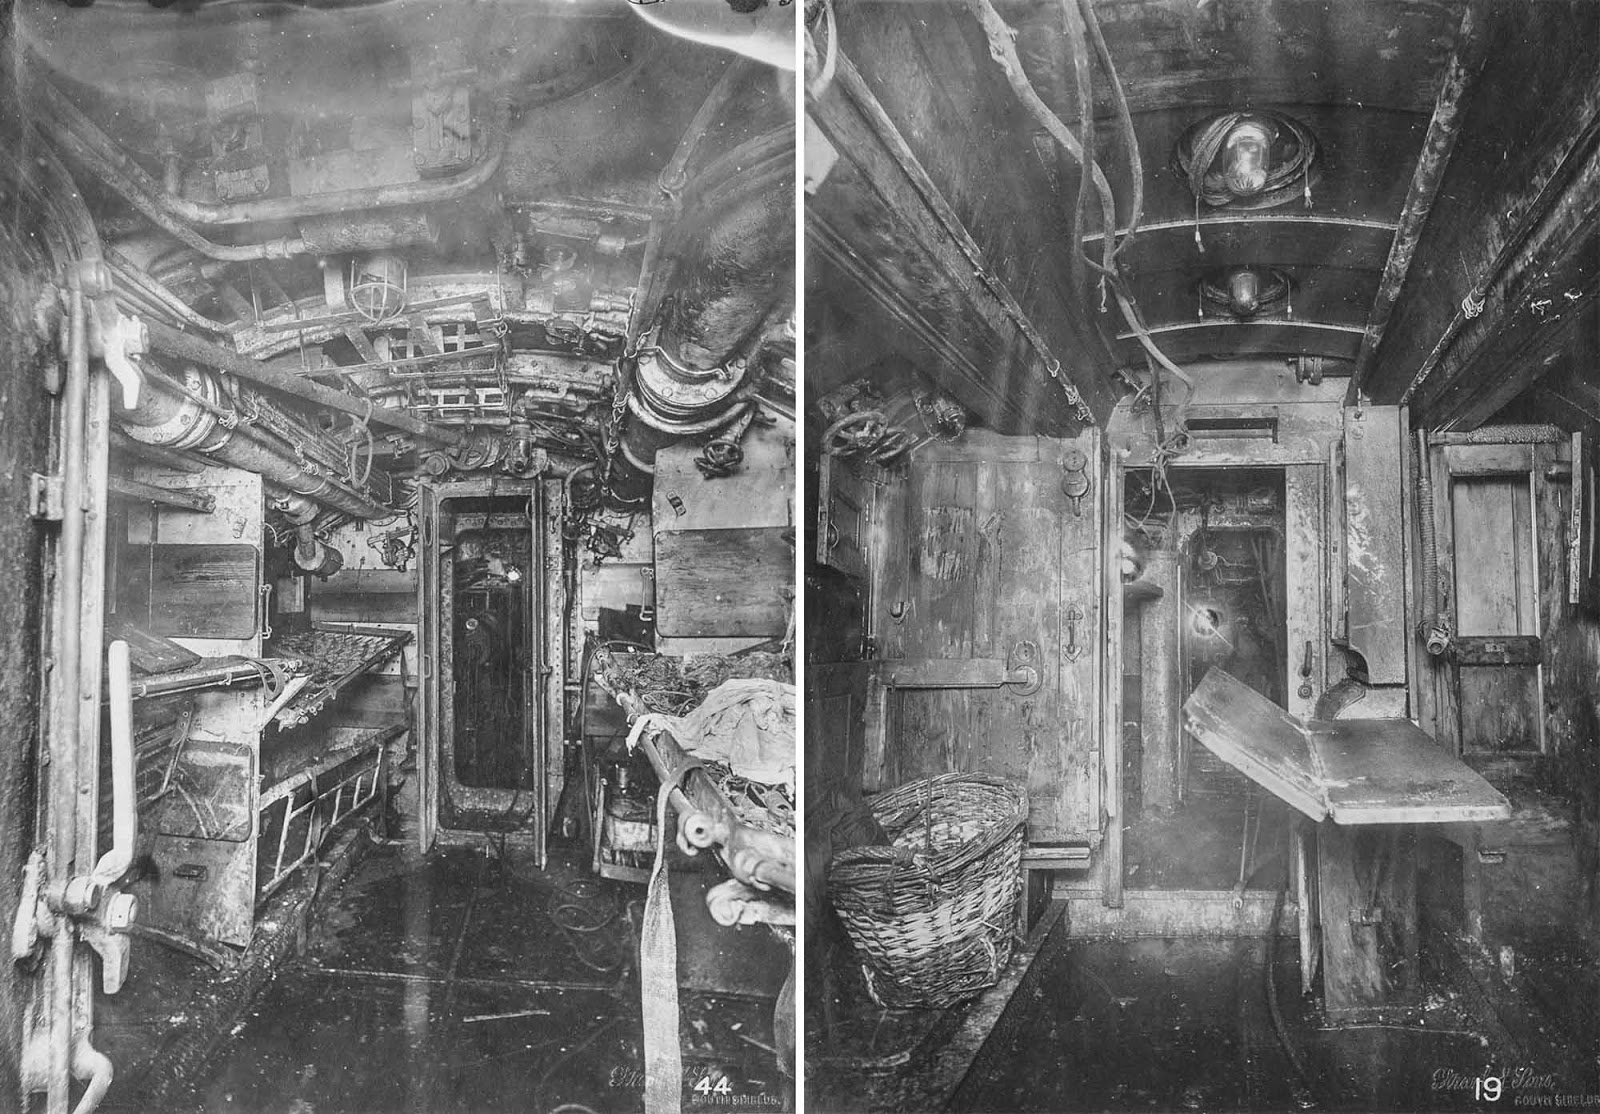 (Left) Number 6 compartment with sleeping berths. (Right) Crew space.